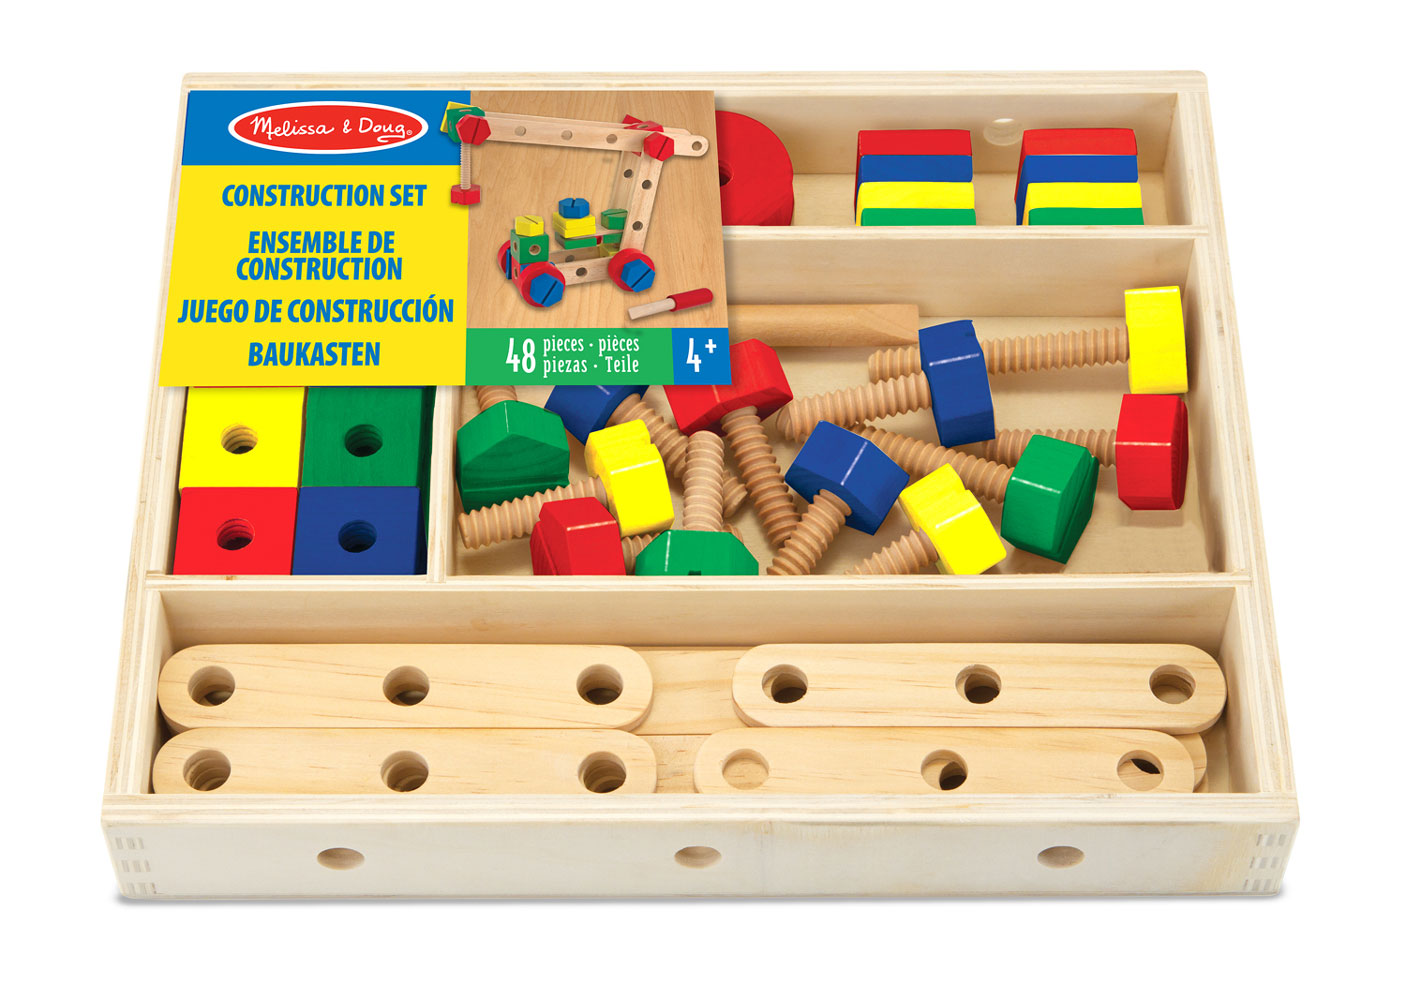 buy construction set in a box for cad 29.99   toys r us canada